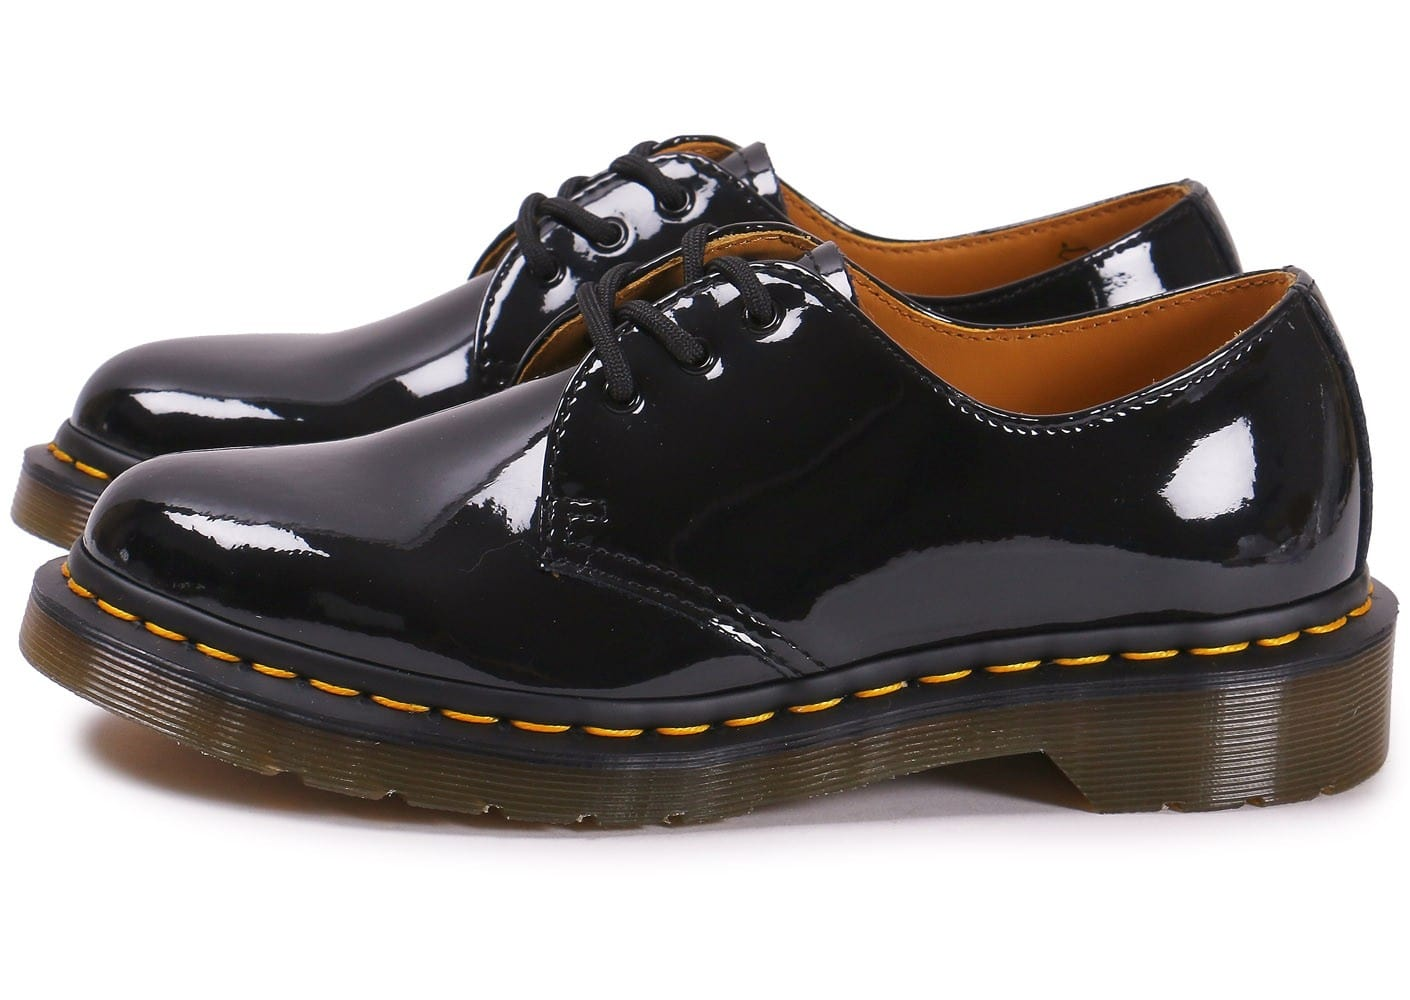 dr martens 1461 w vernis noire chaussures 50 sur le 2e article chausport. Black Bedroom Furniture Sets. Home Design Ideas